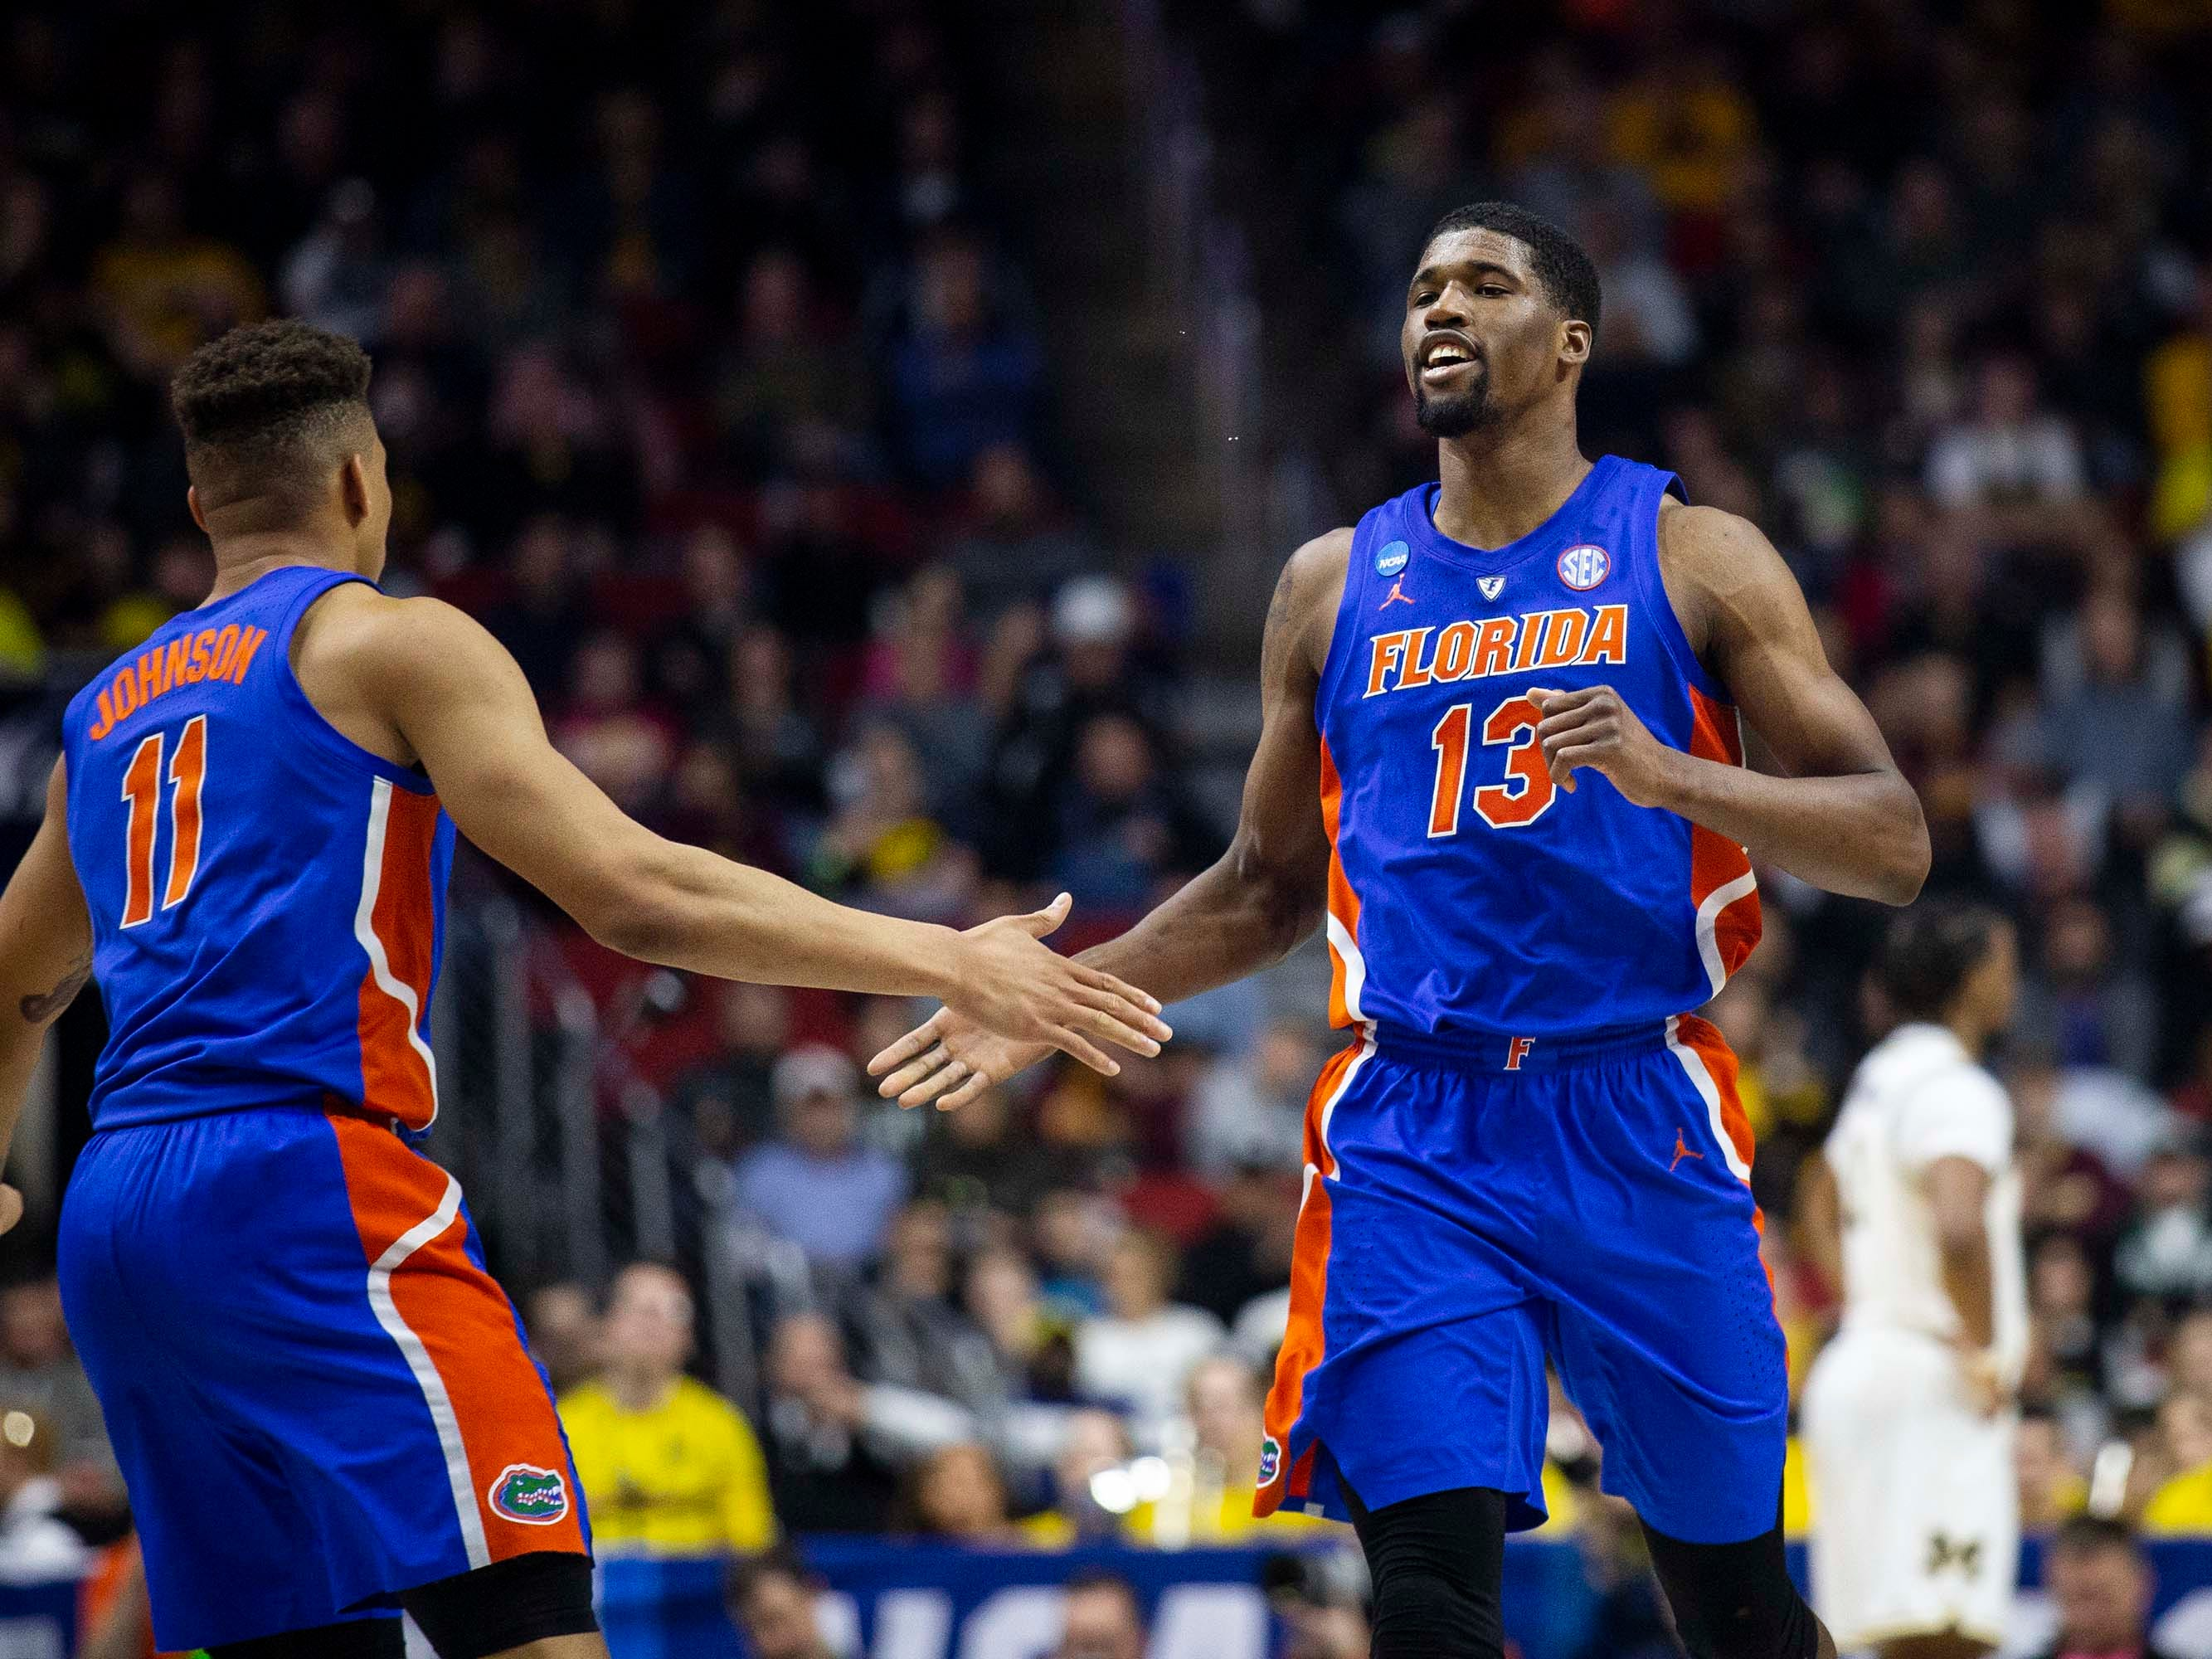 Florida's Keyontae Johnson and Florida's Kevarrius Hayes give each other five after scoring on the previous play during the NCAA Tournament second-round match-up between Michigan and Florida on Saturday, March 23, 2019, in Wells Fargo Arena in Des Moines, Iowa.